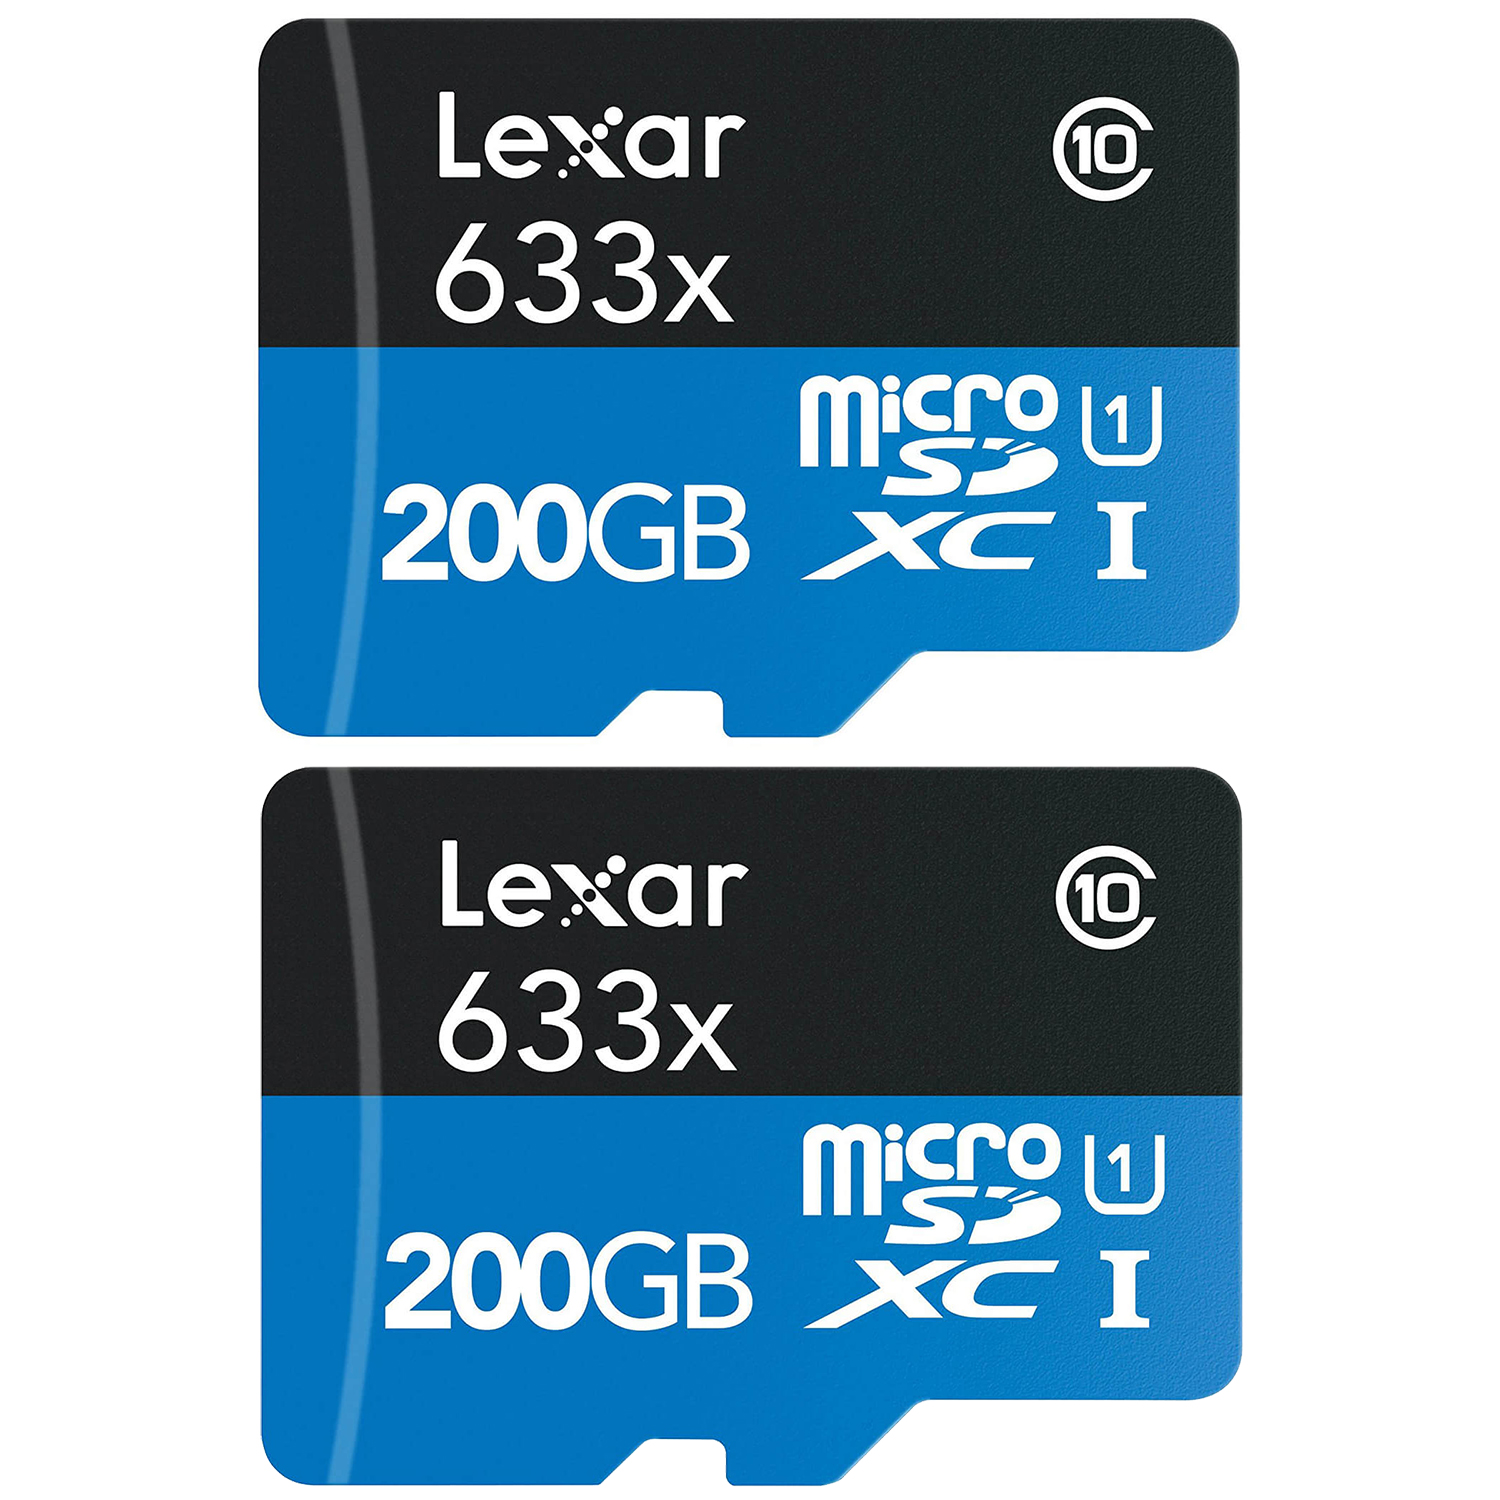 Refurbished 2-Pack Lexar High-Performance microSDXC 633x 200GB Class 10 UHS-I Memory Card by Lexar